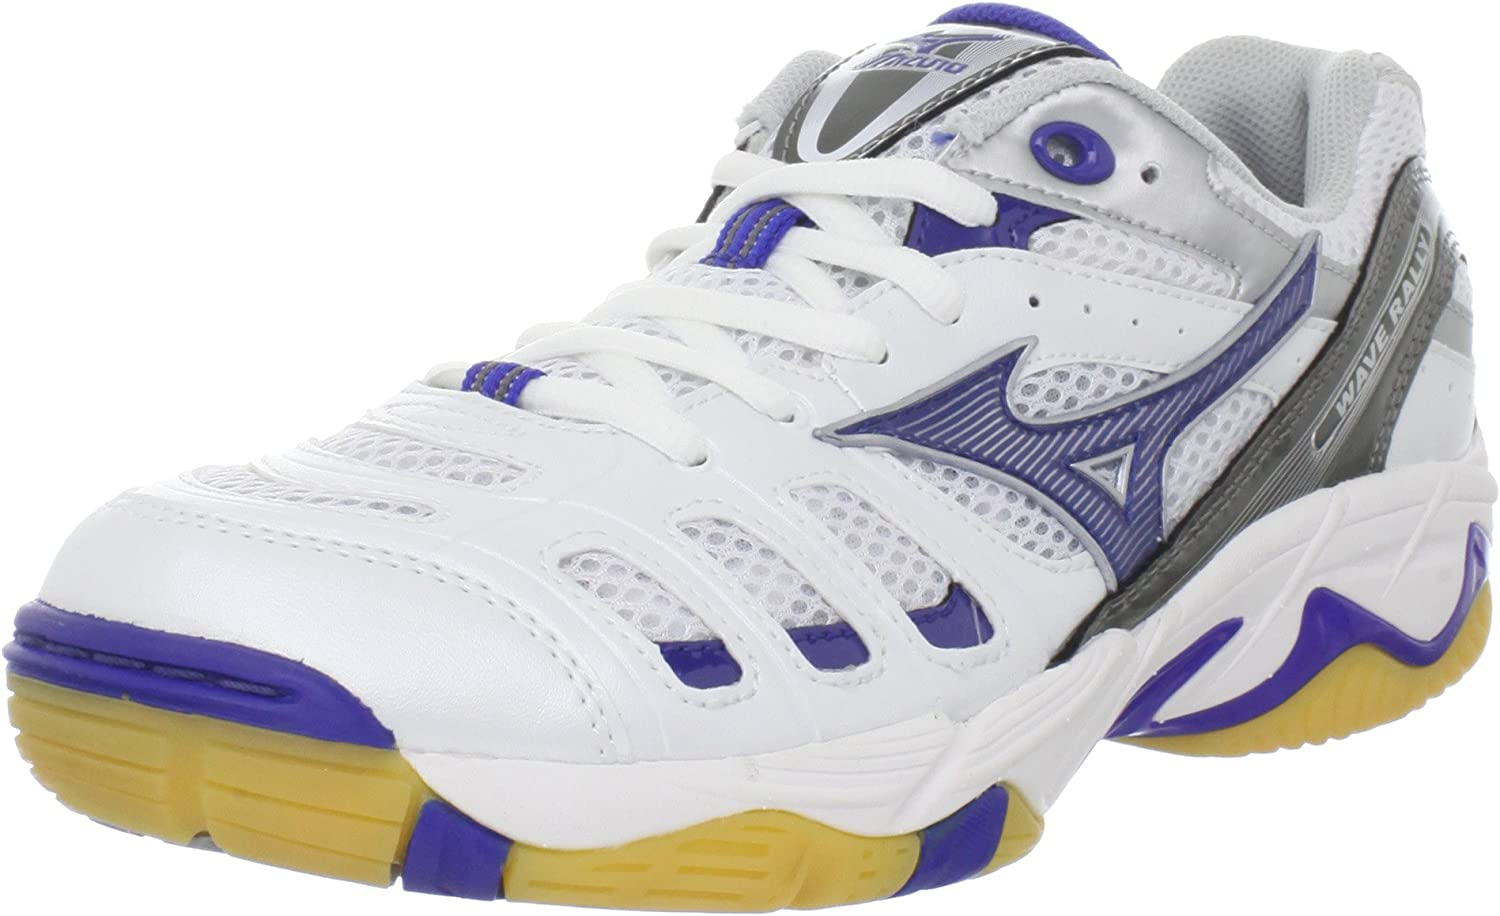 Mizuno Women's Wave Rally 2 Volleyball Fees Max 83% OFF free Shoe